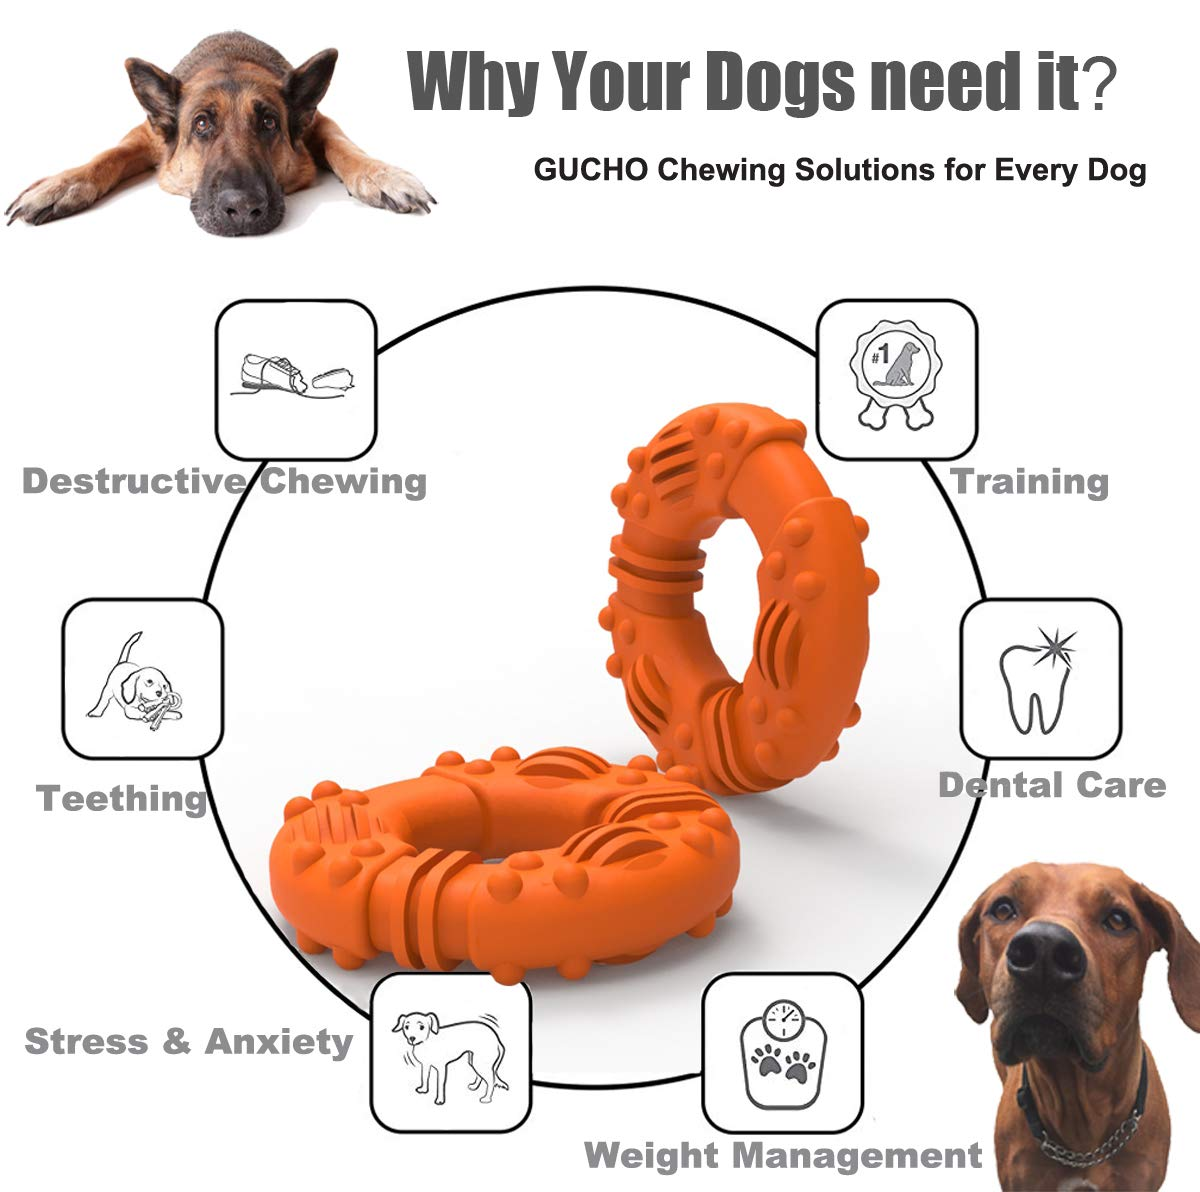 Perfect Training Teething Toys GUCHO Durable Dog Chew Toys for Aggressive Chewers Lifetime Replacement Guarantee Indestructible Dog Toys Tough Rubber Puppy Chew Toys for Medium//Large Dogs